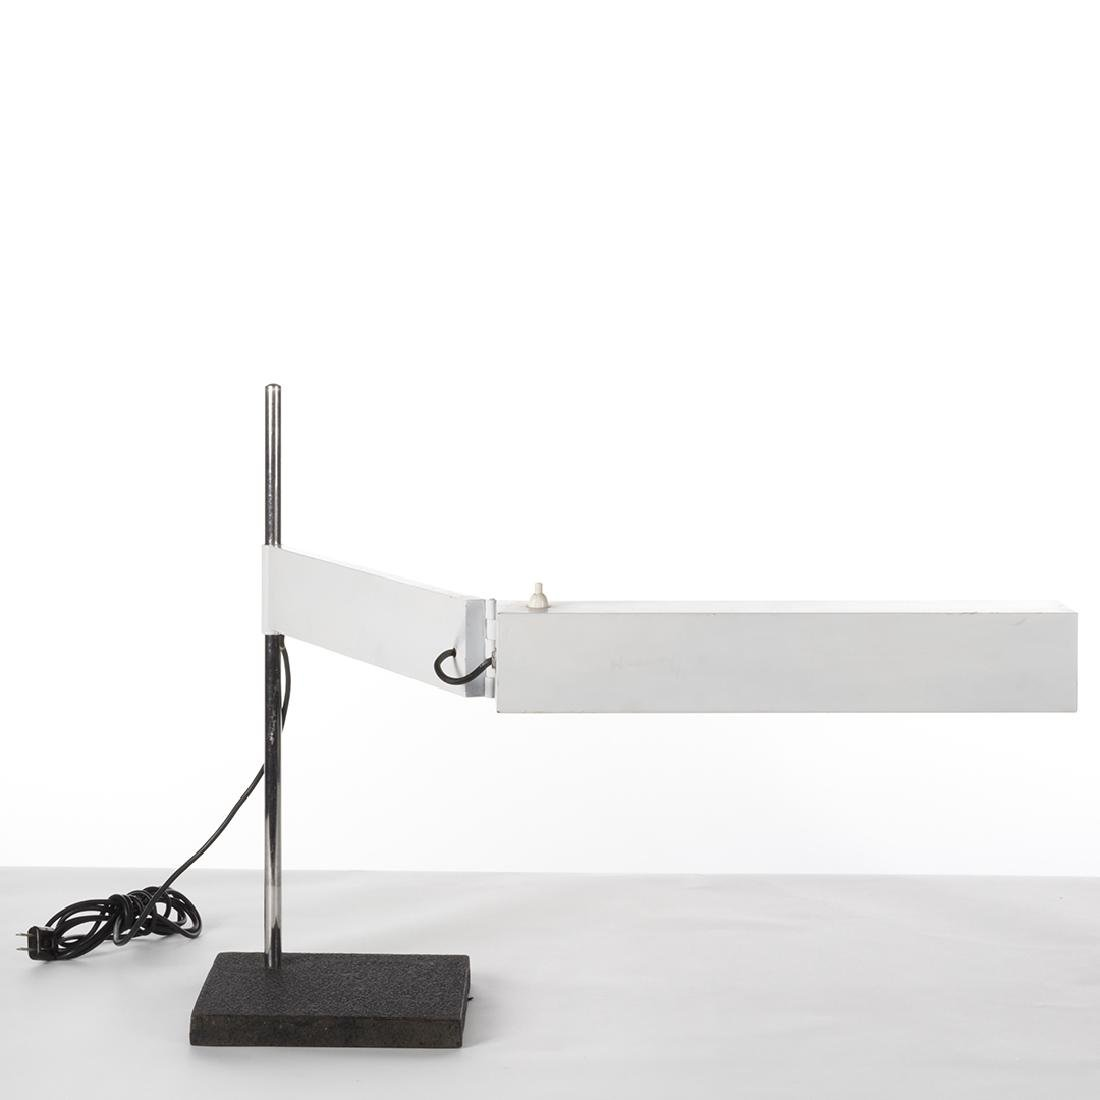 Dieter Waeckerlin Desk Lamp - 2